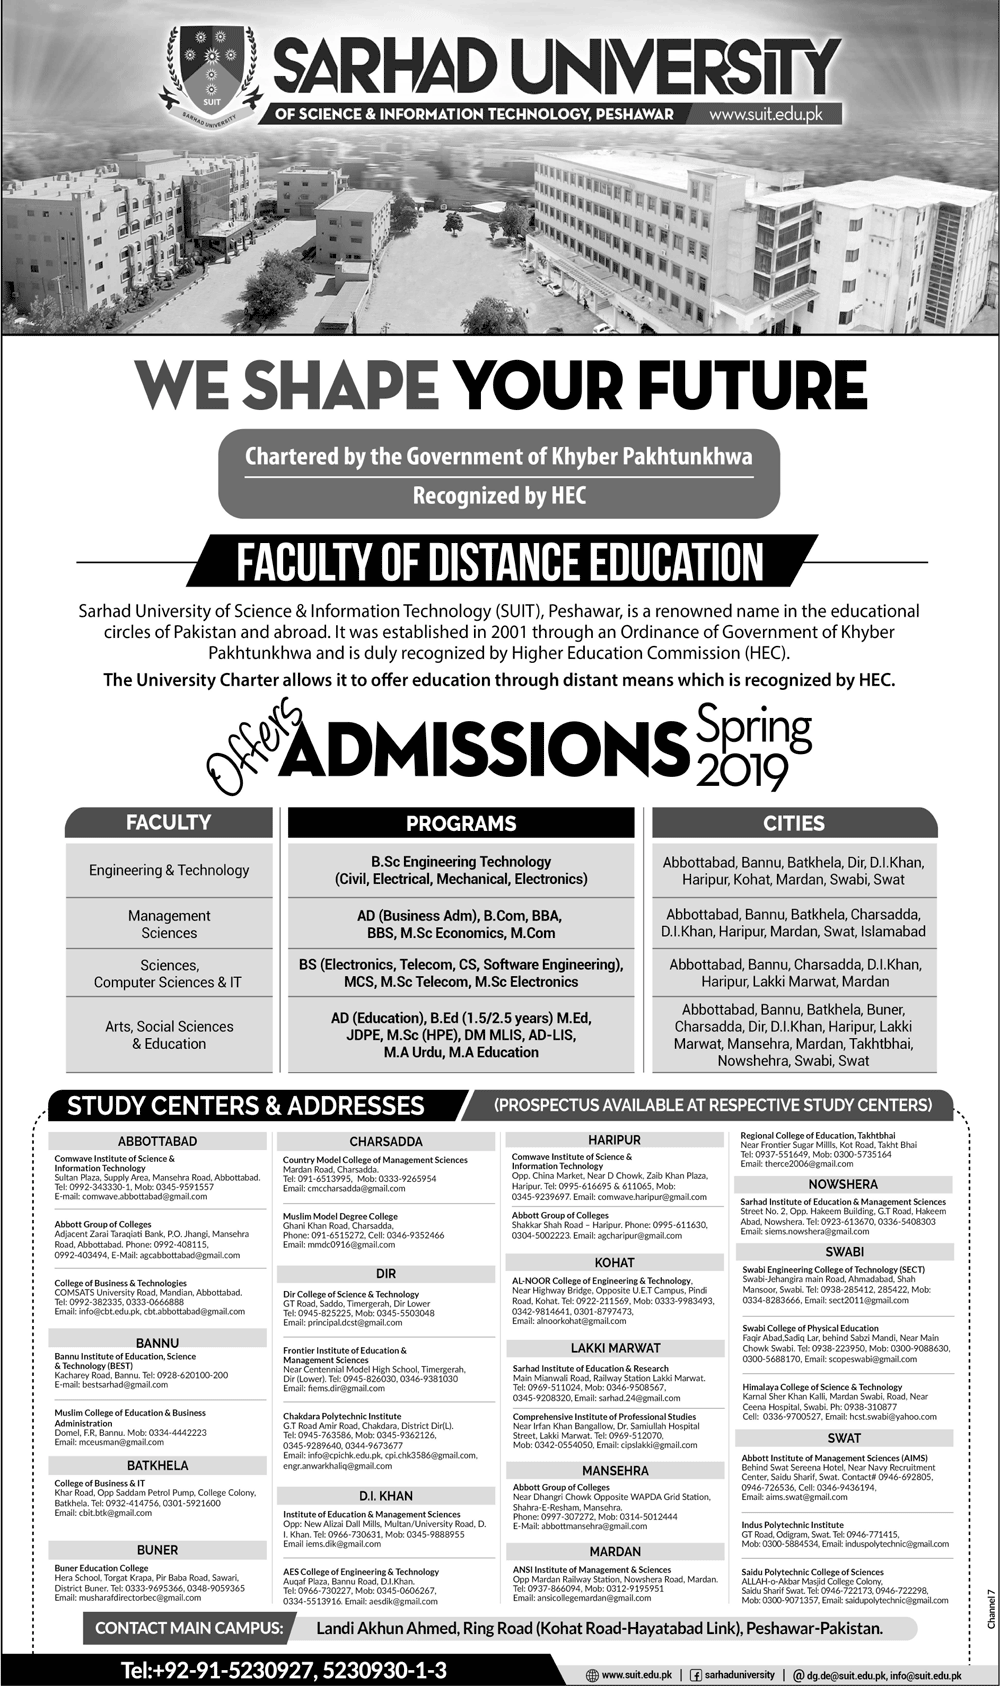 Sarhad University Admission 2019 in Distance Learning Programs